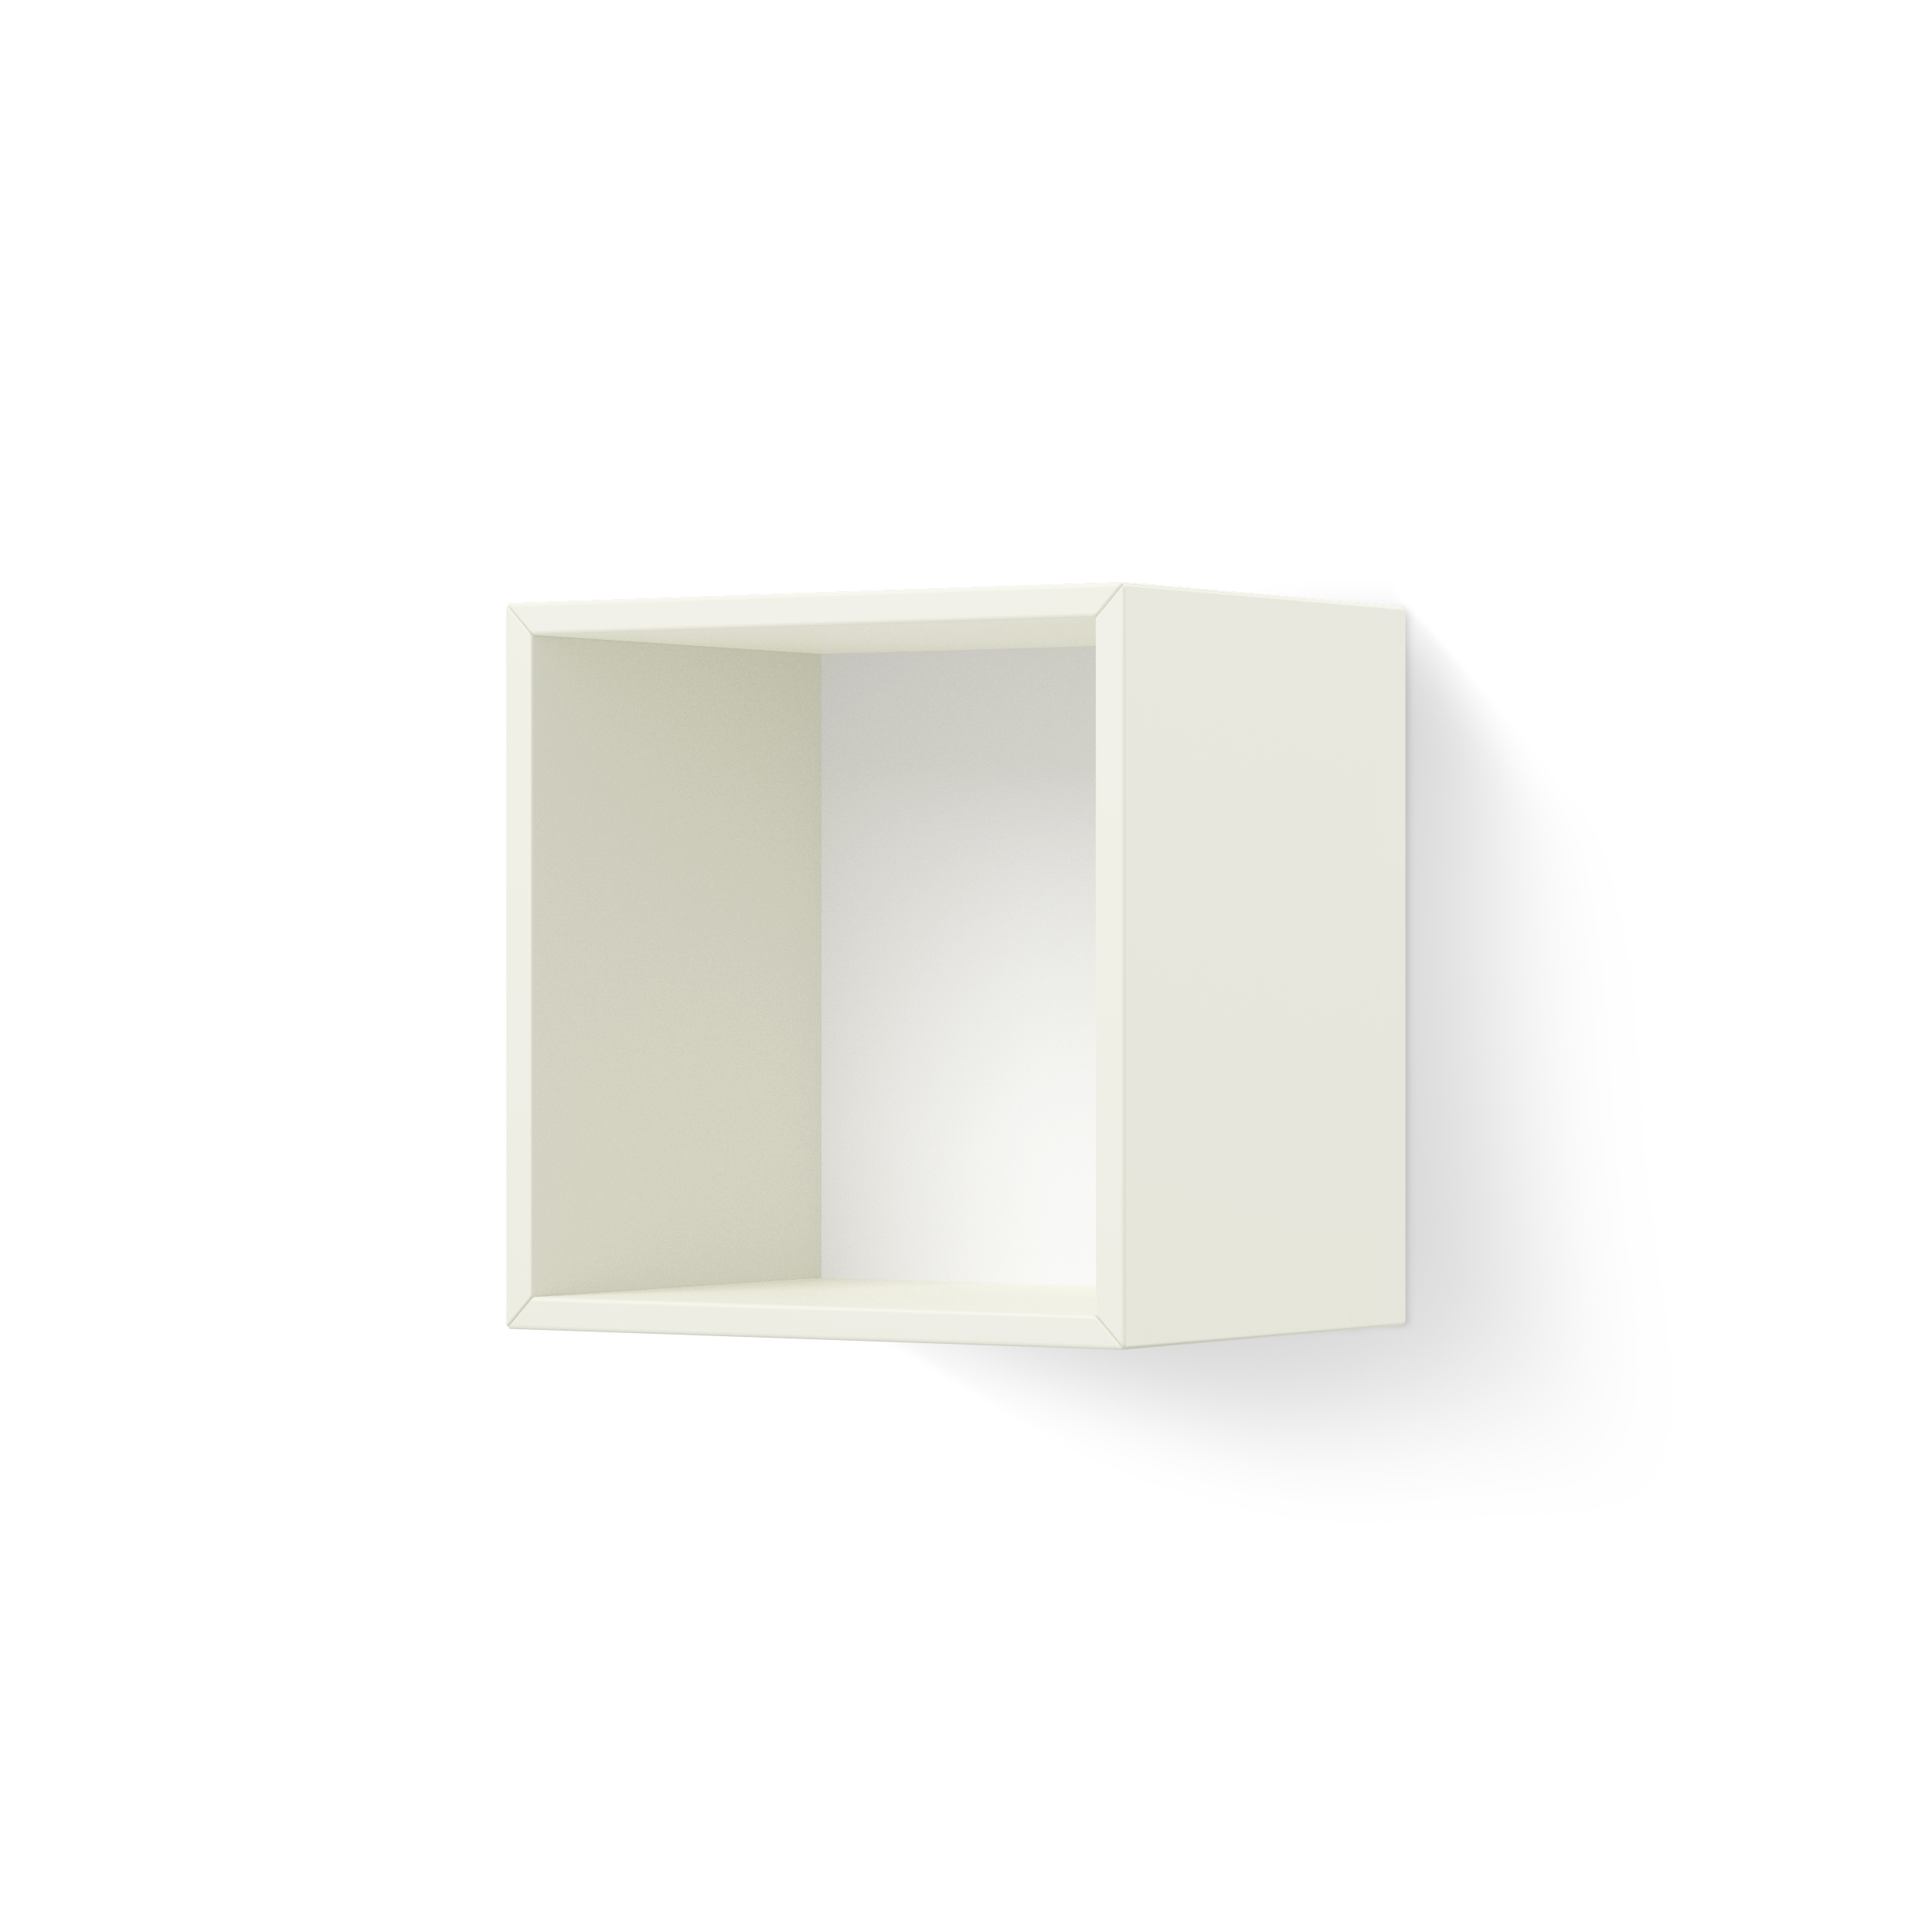 Raft Modular Mdf Creme Imagine